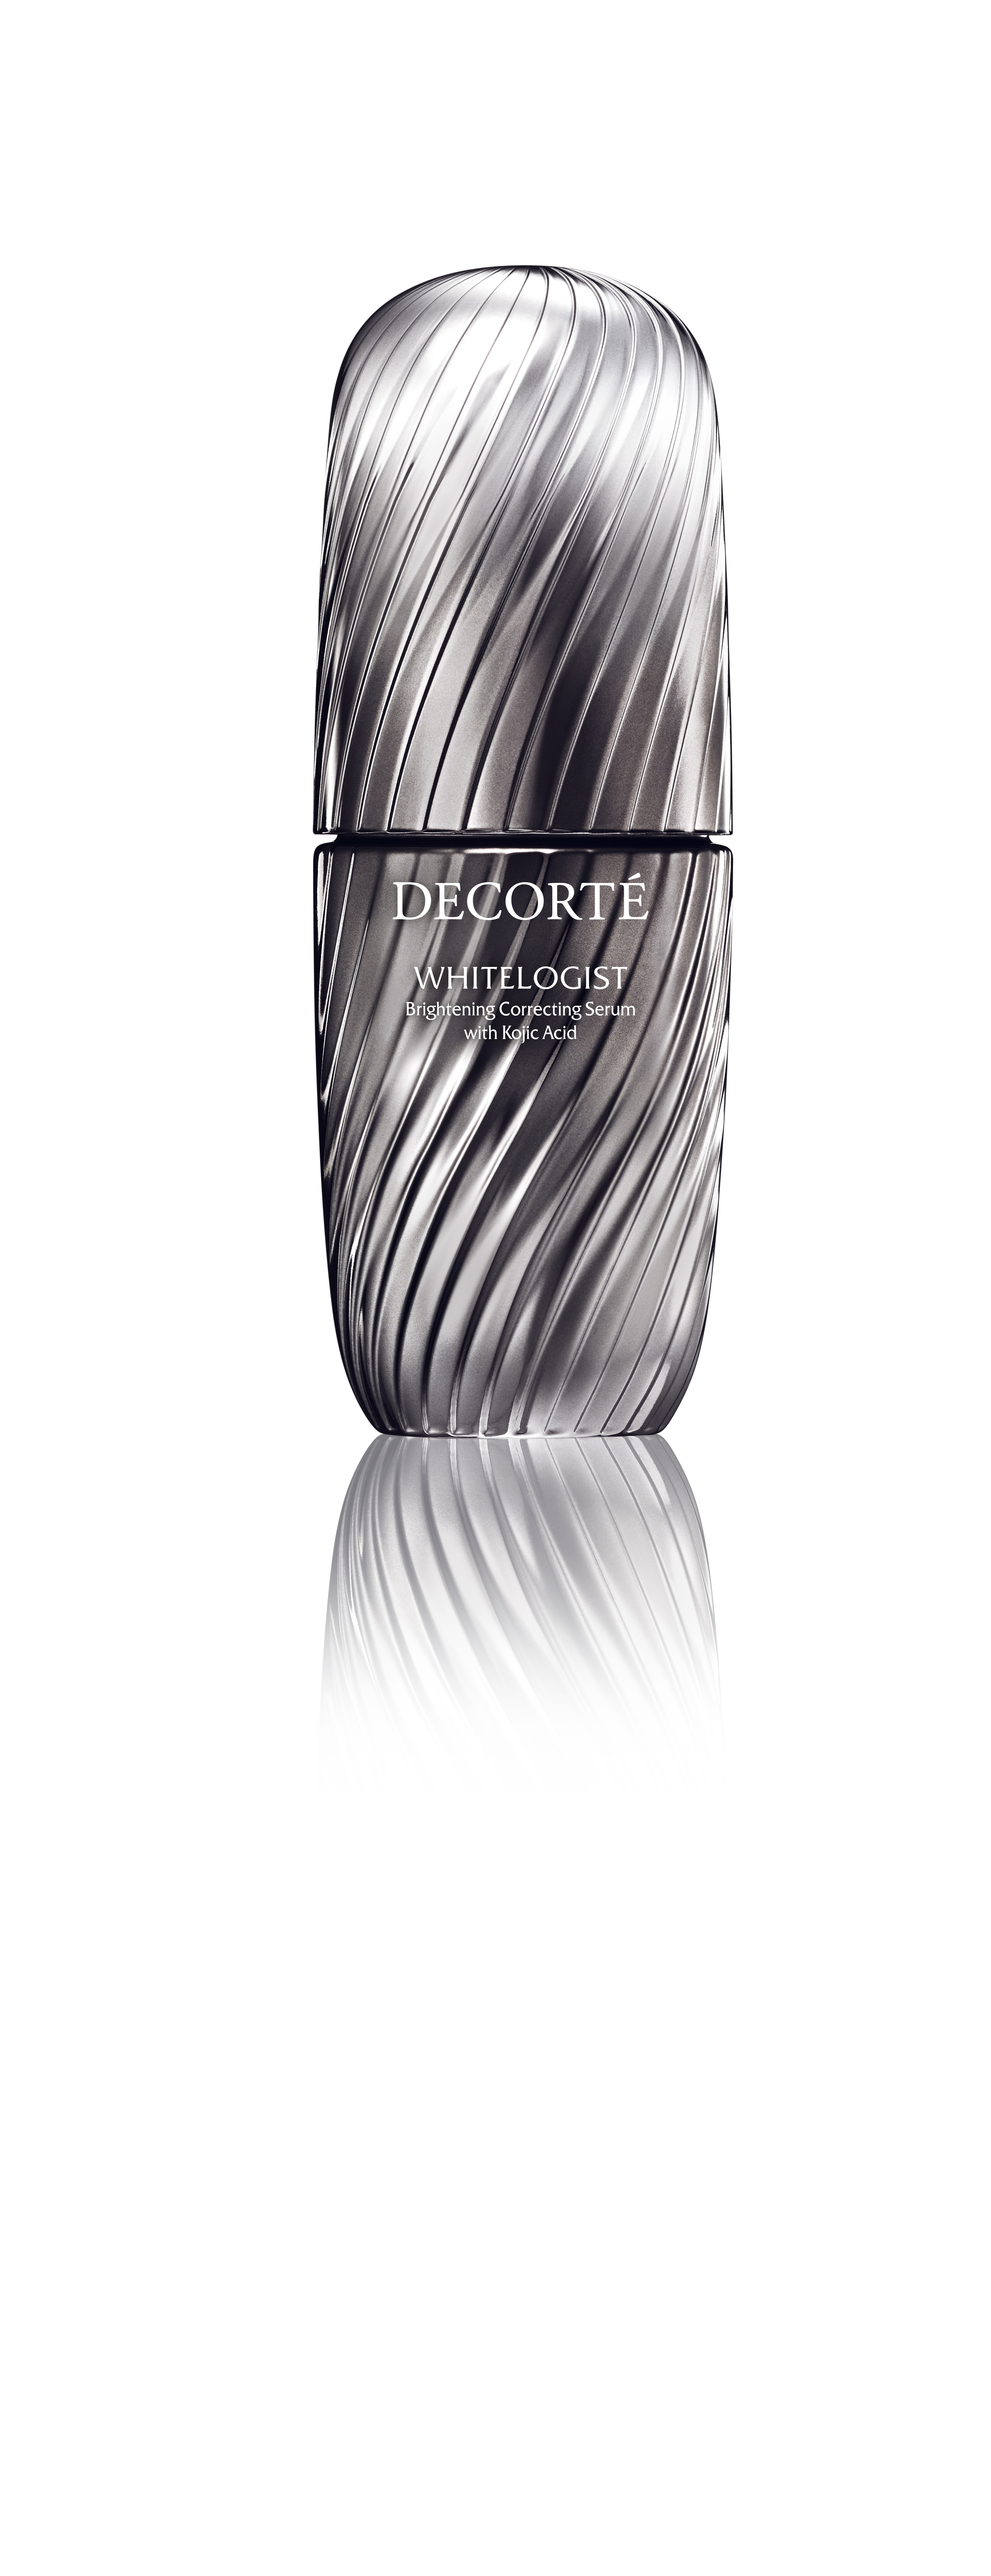 Decorte Whitologist Brightening Concentrate